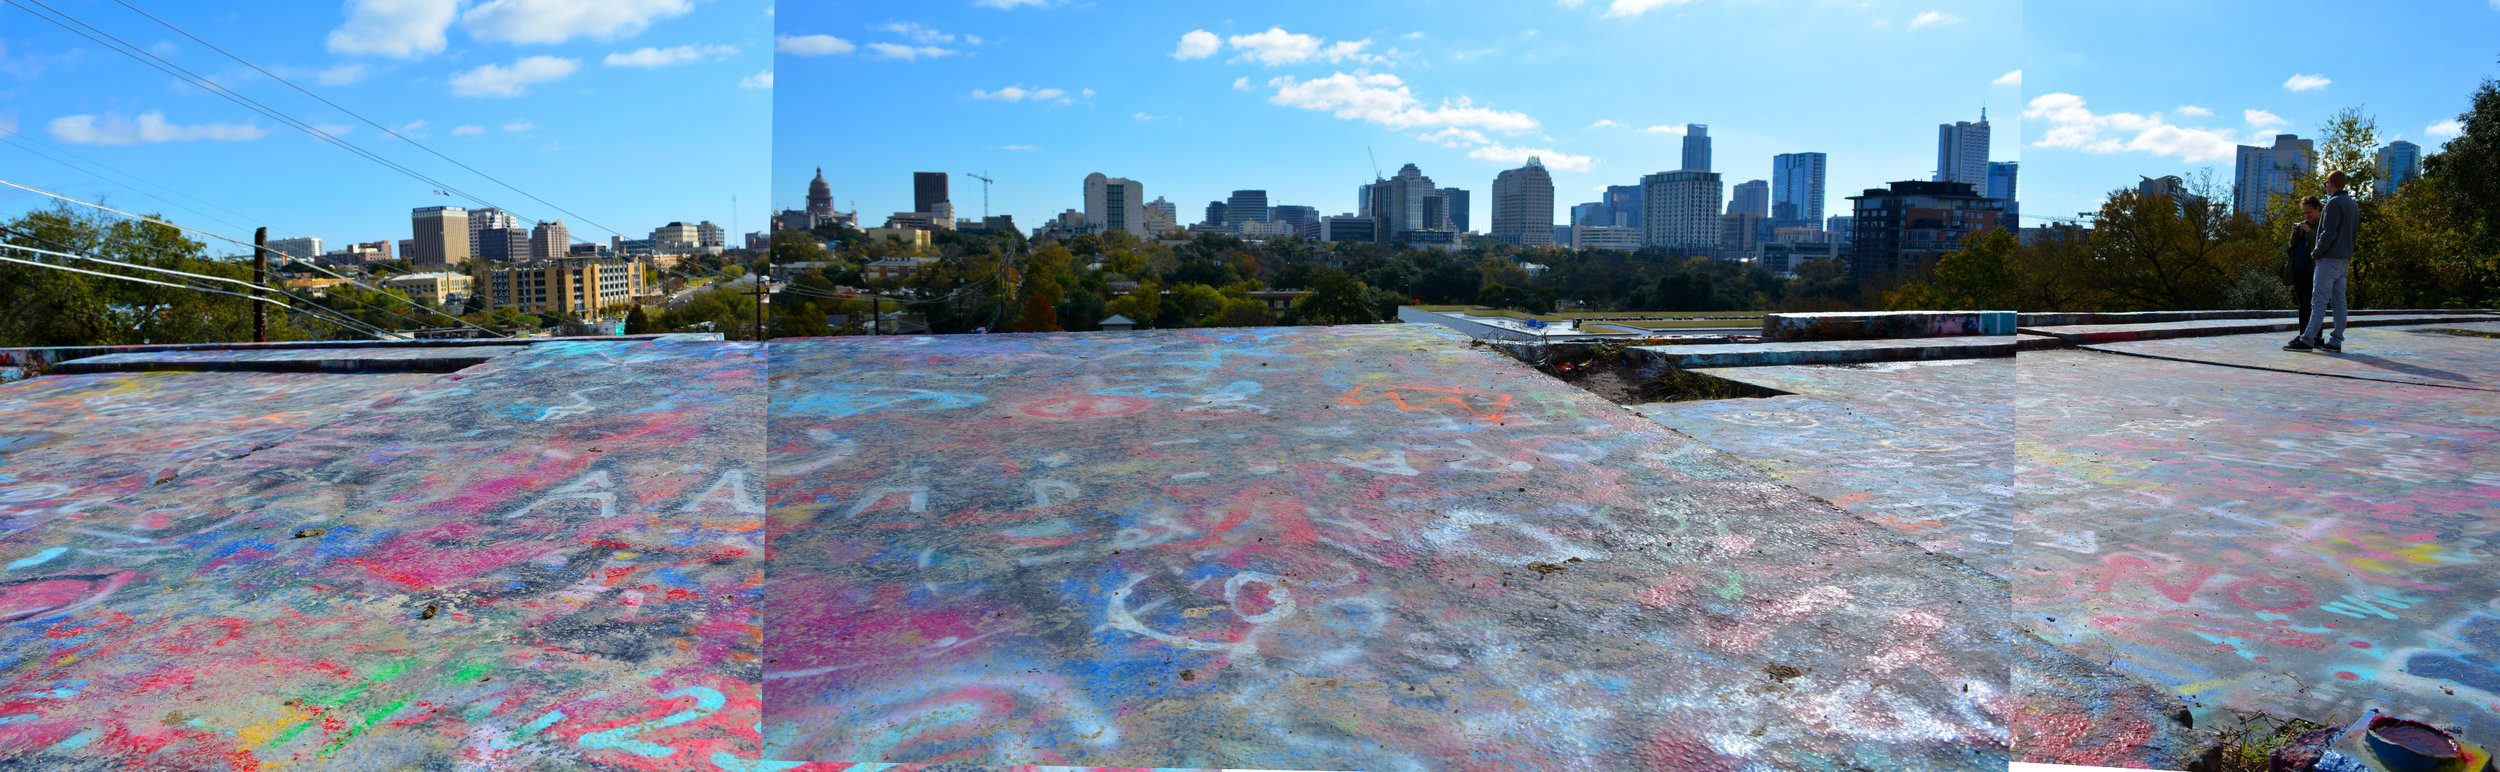 The city view from HOPE Outdoor Gallery